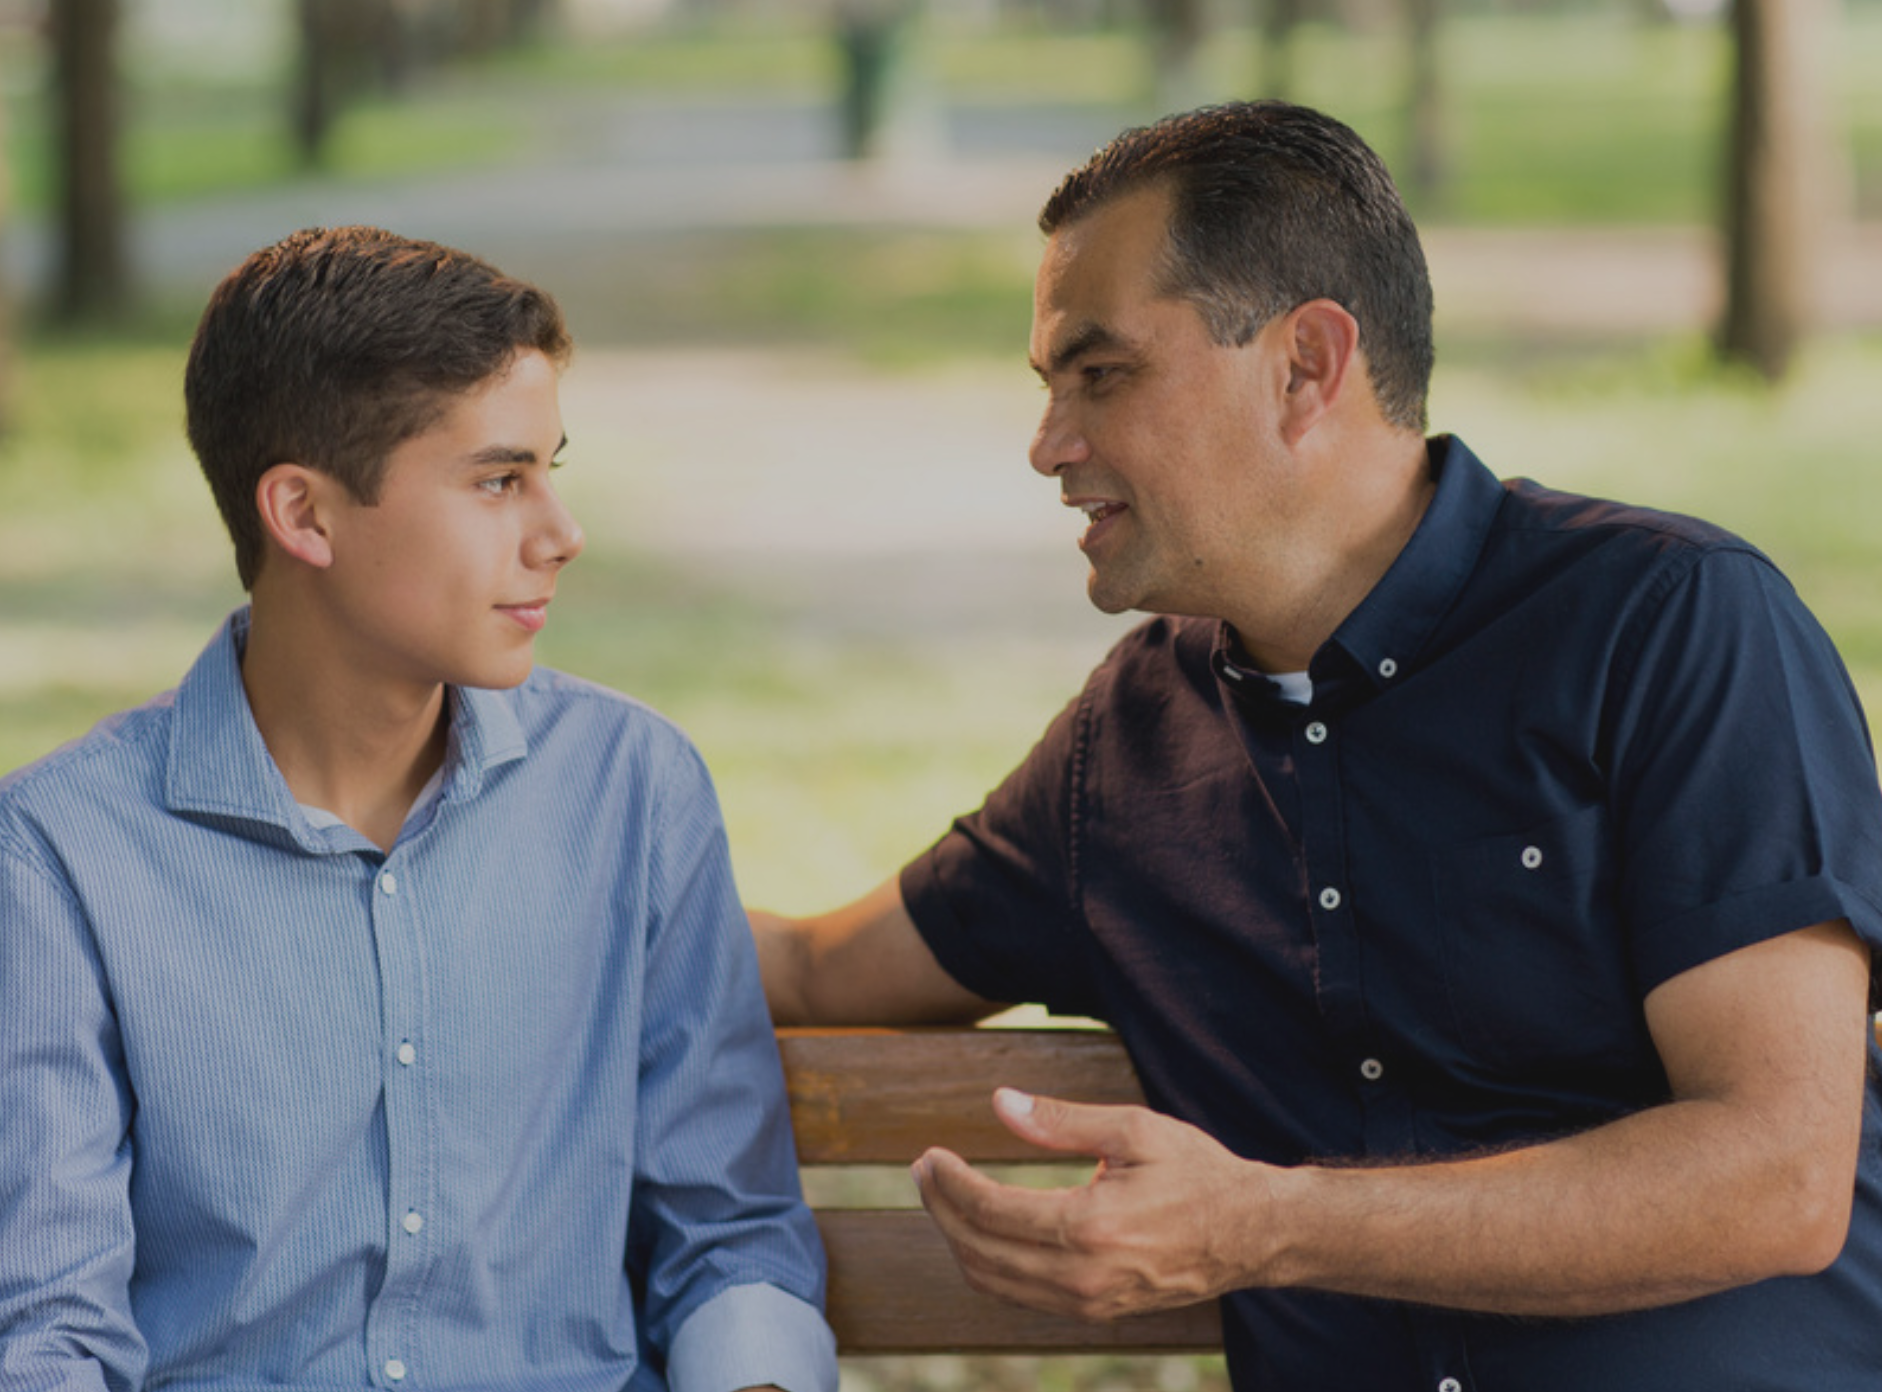 To Tell Or Not To Tell: How To Respond When Our Kids Confide In Us